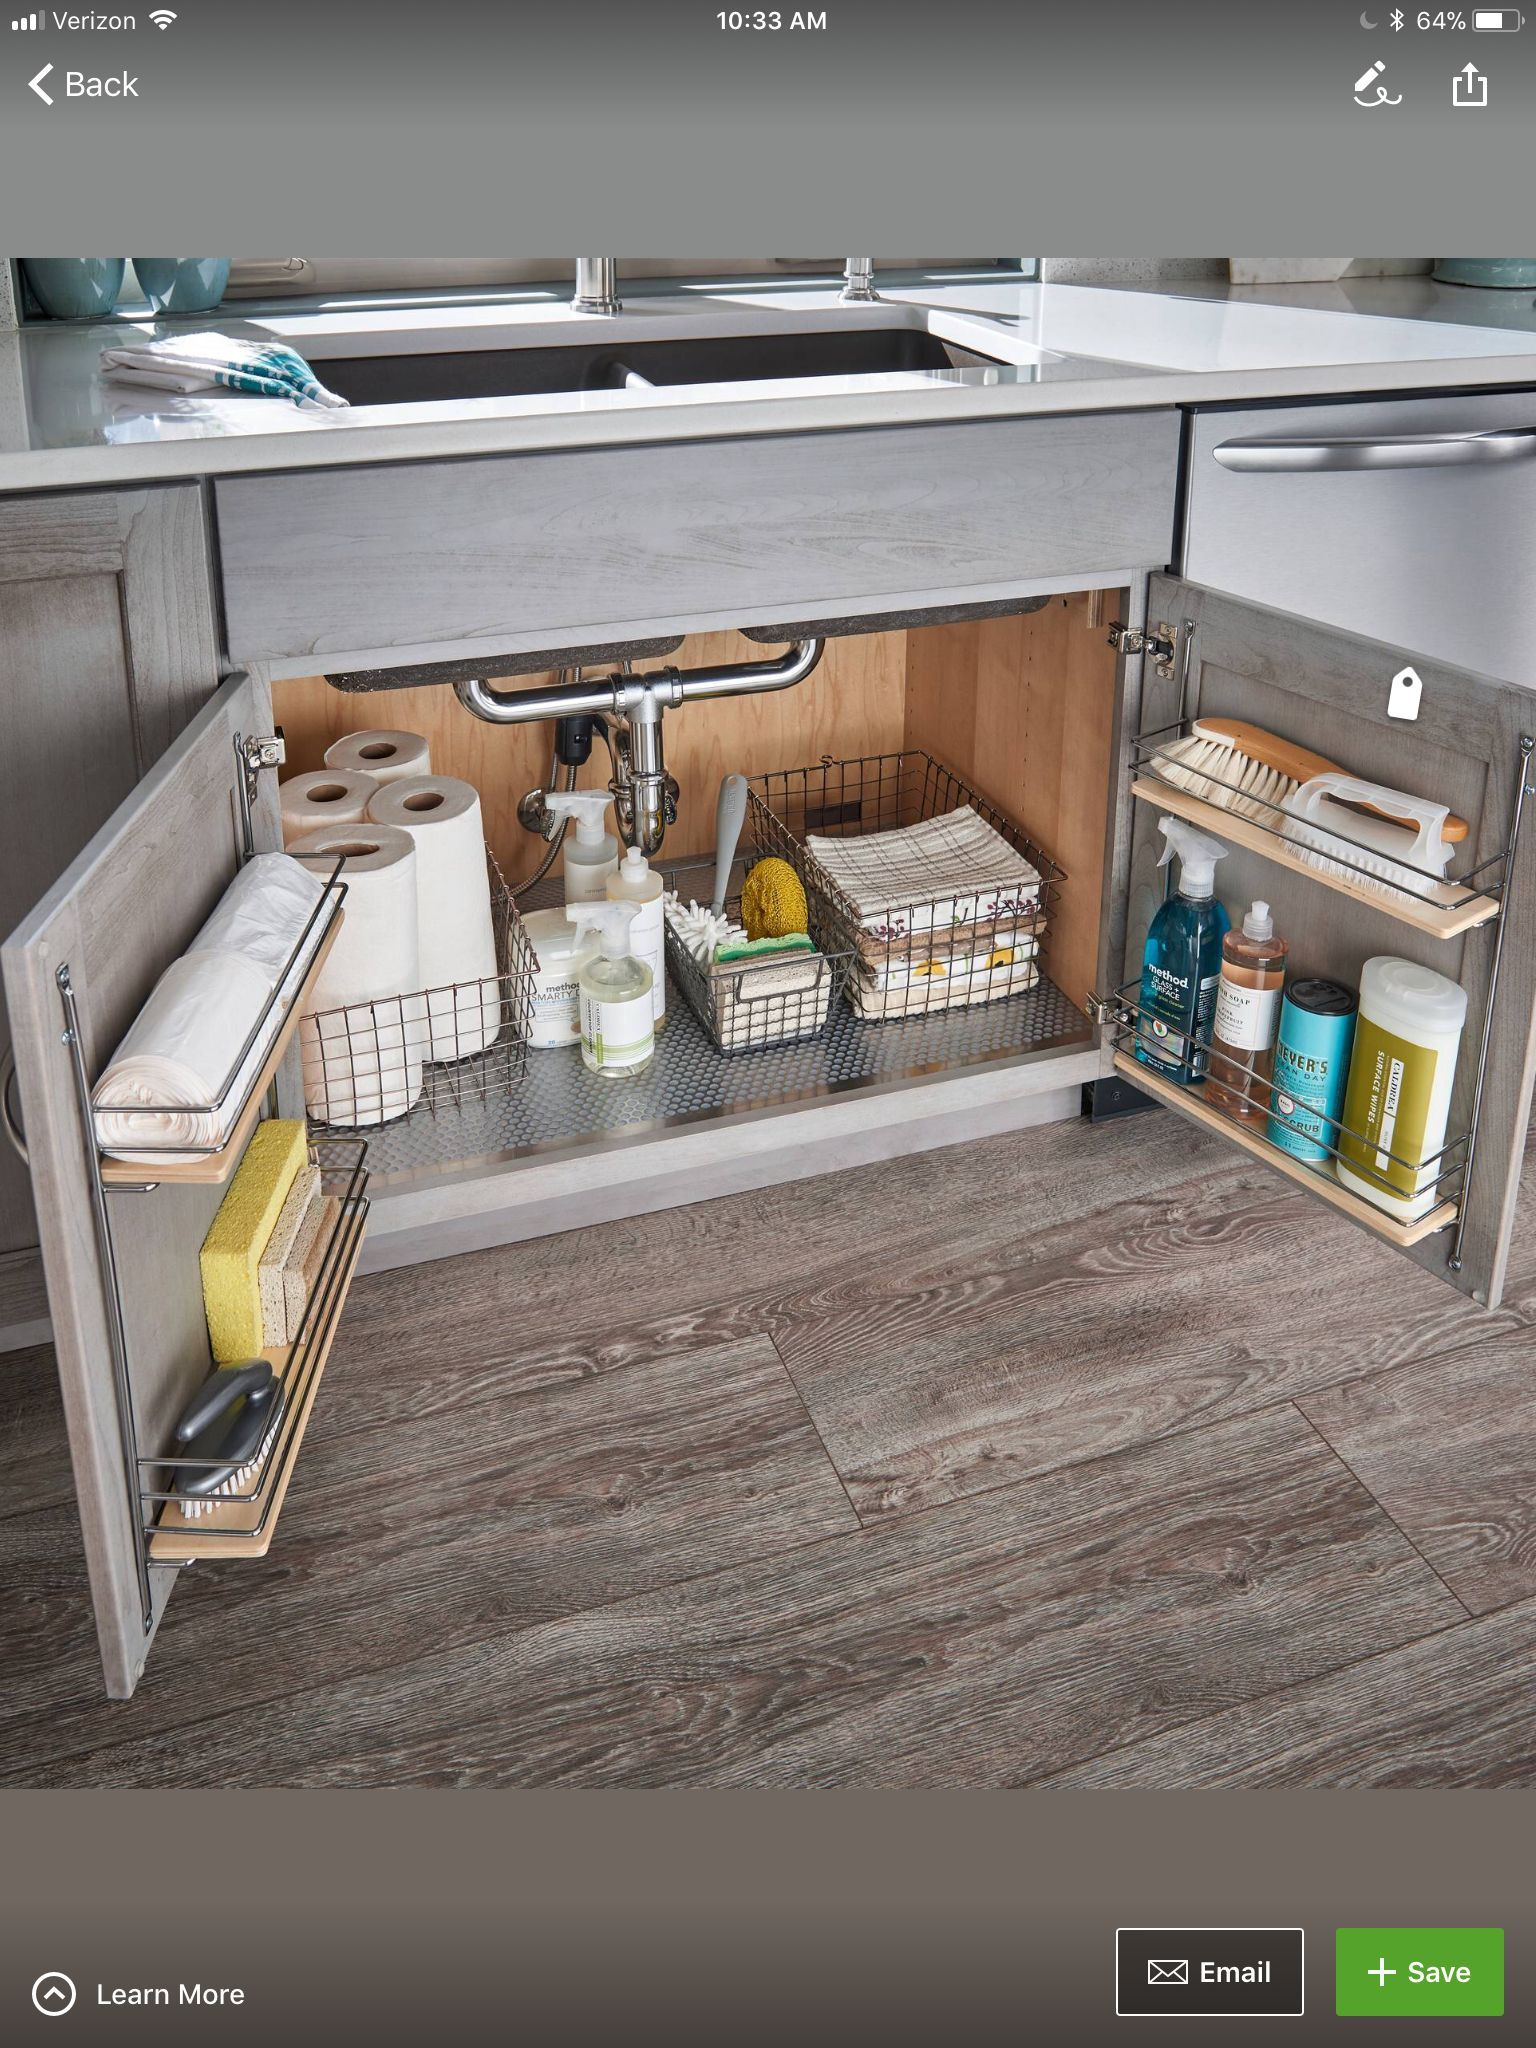 Under Kitchen Sink Storage Kitchen Sink Storage In 2020 Under Kitchen Sinks Kitchen Sink Storage Under Kitchen Sink Storage